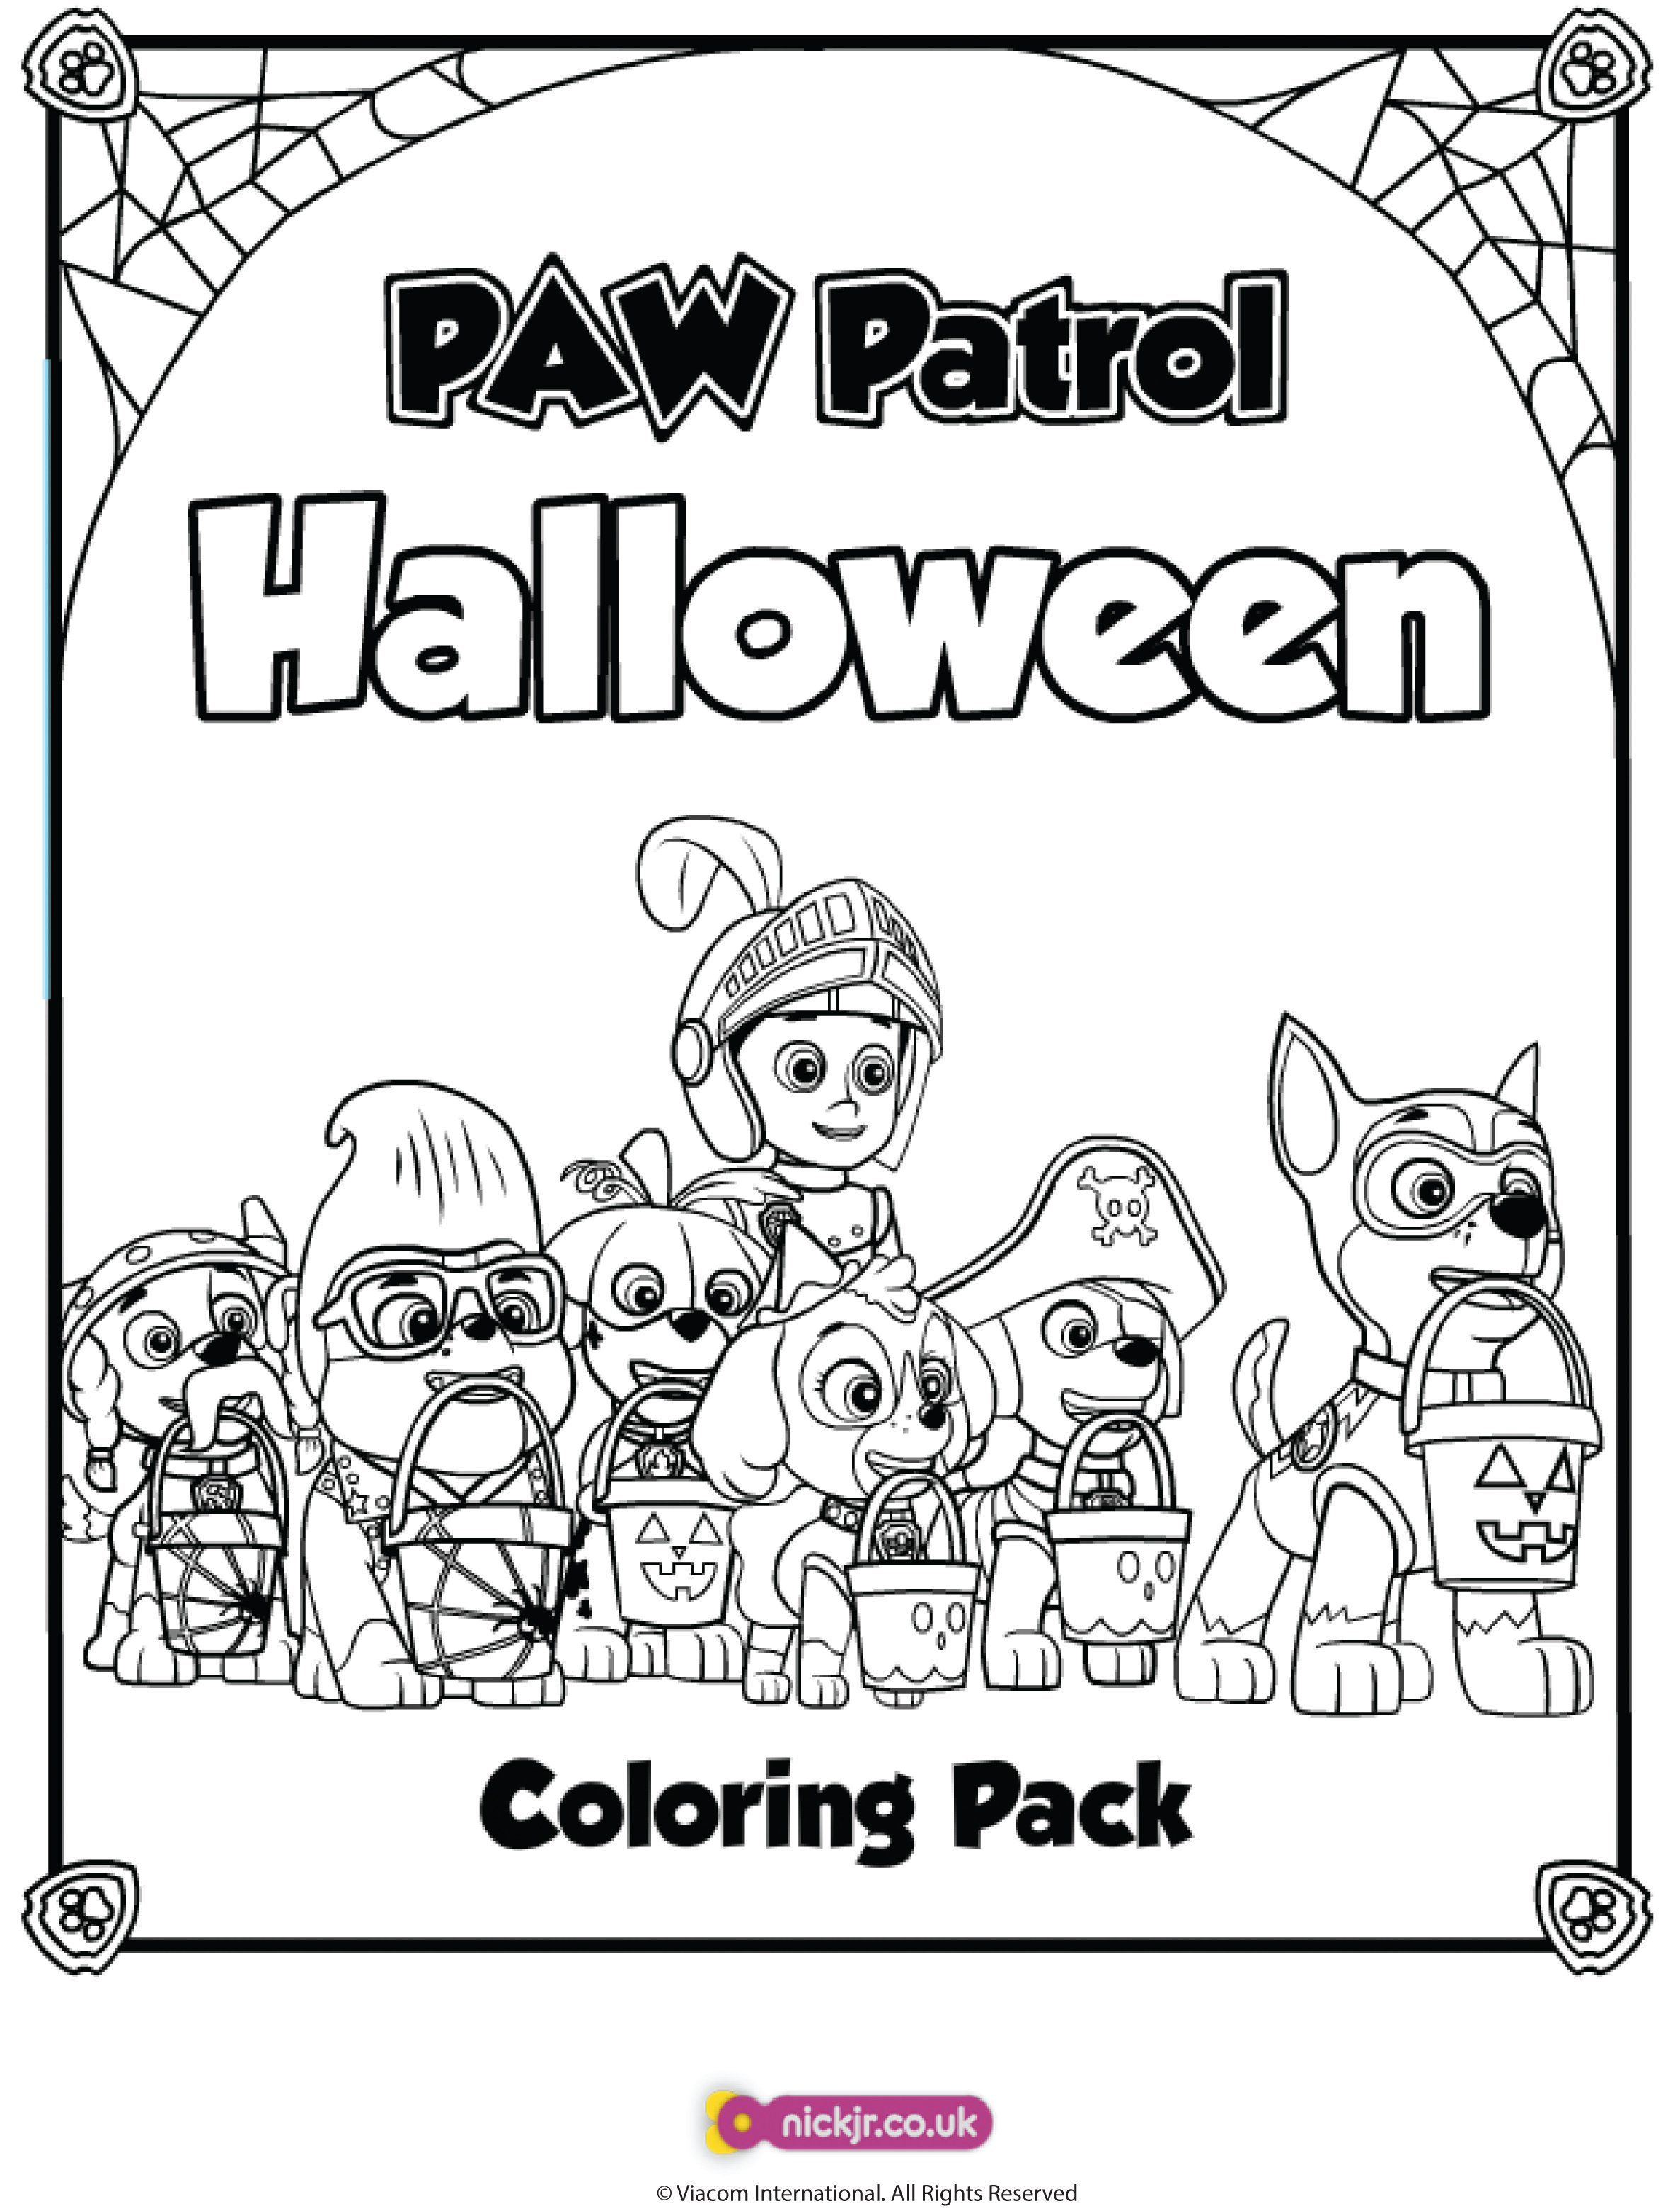 PAW Patrol Halloween Coloring Pages Coloring